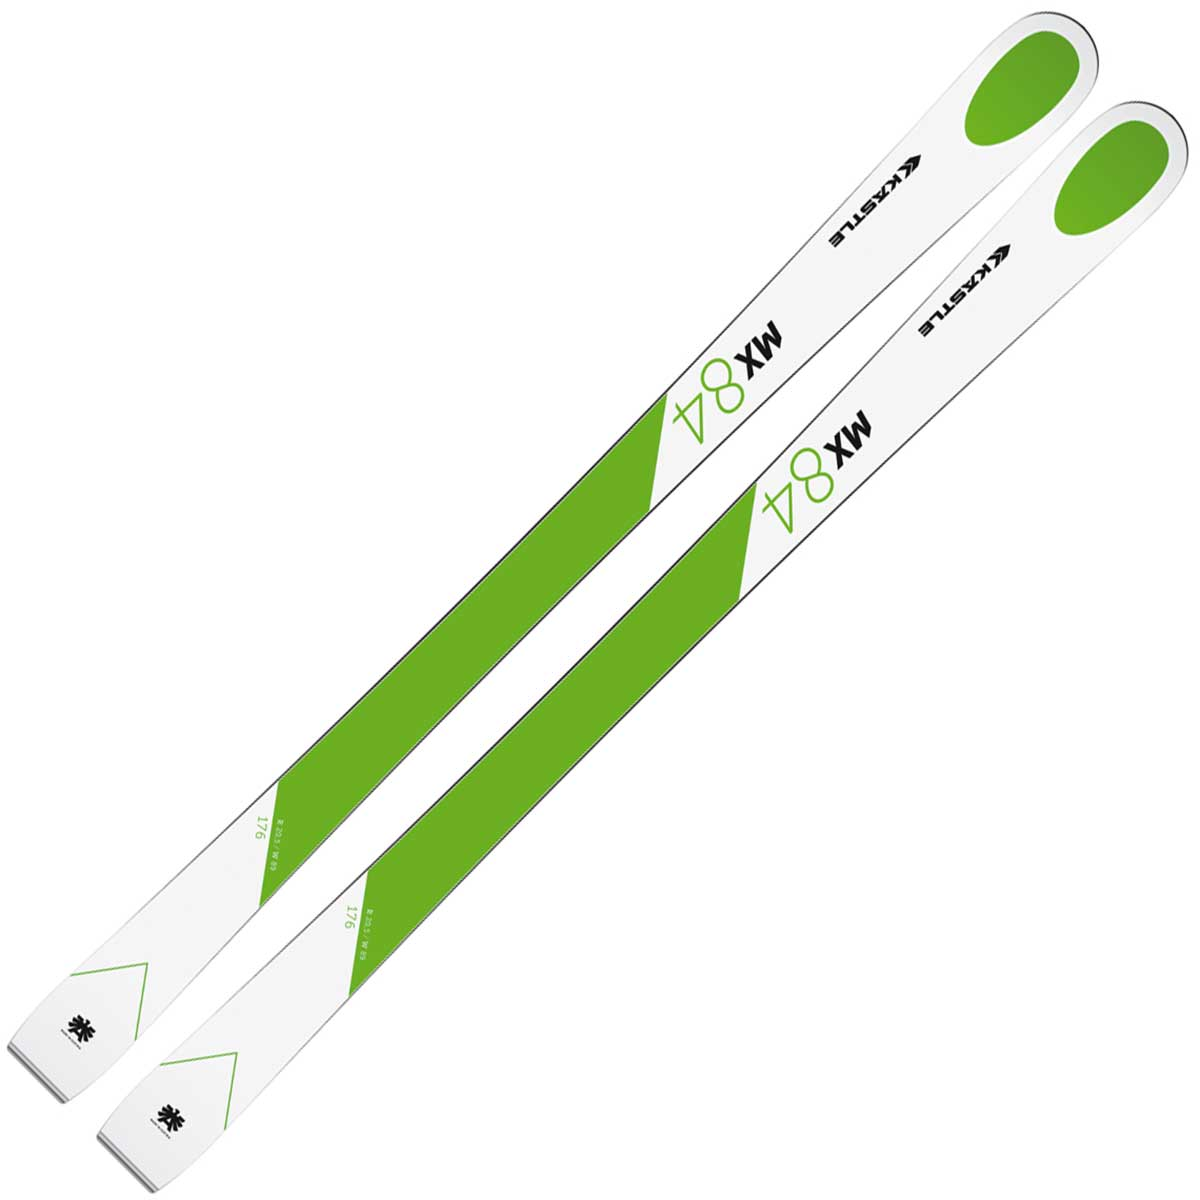 Kastle MX84 ski in white and green